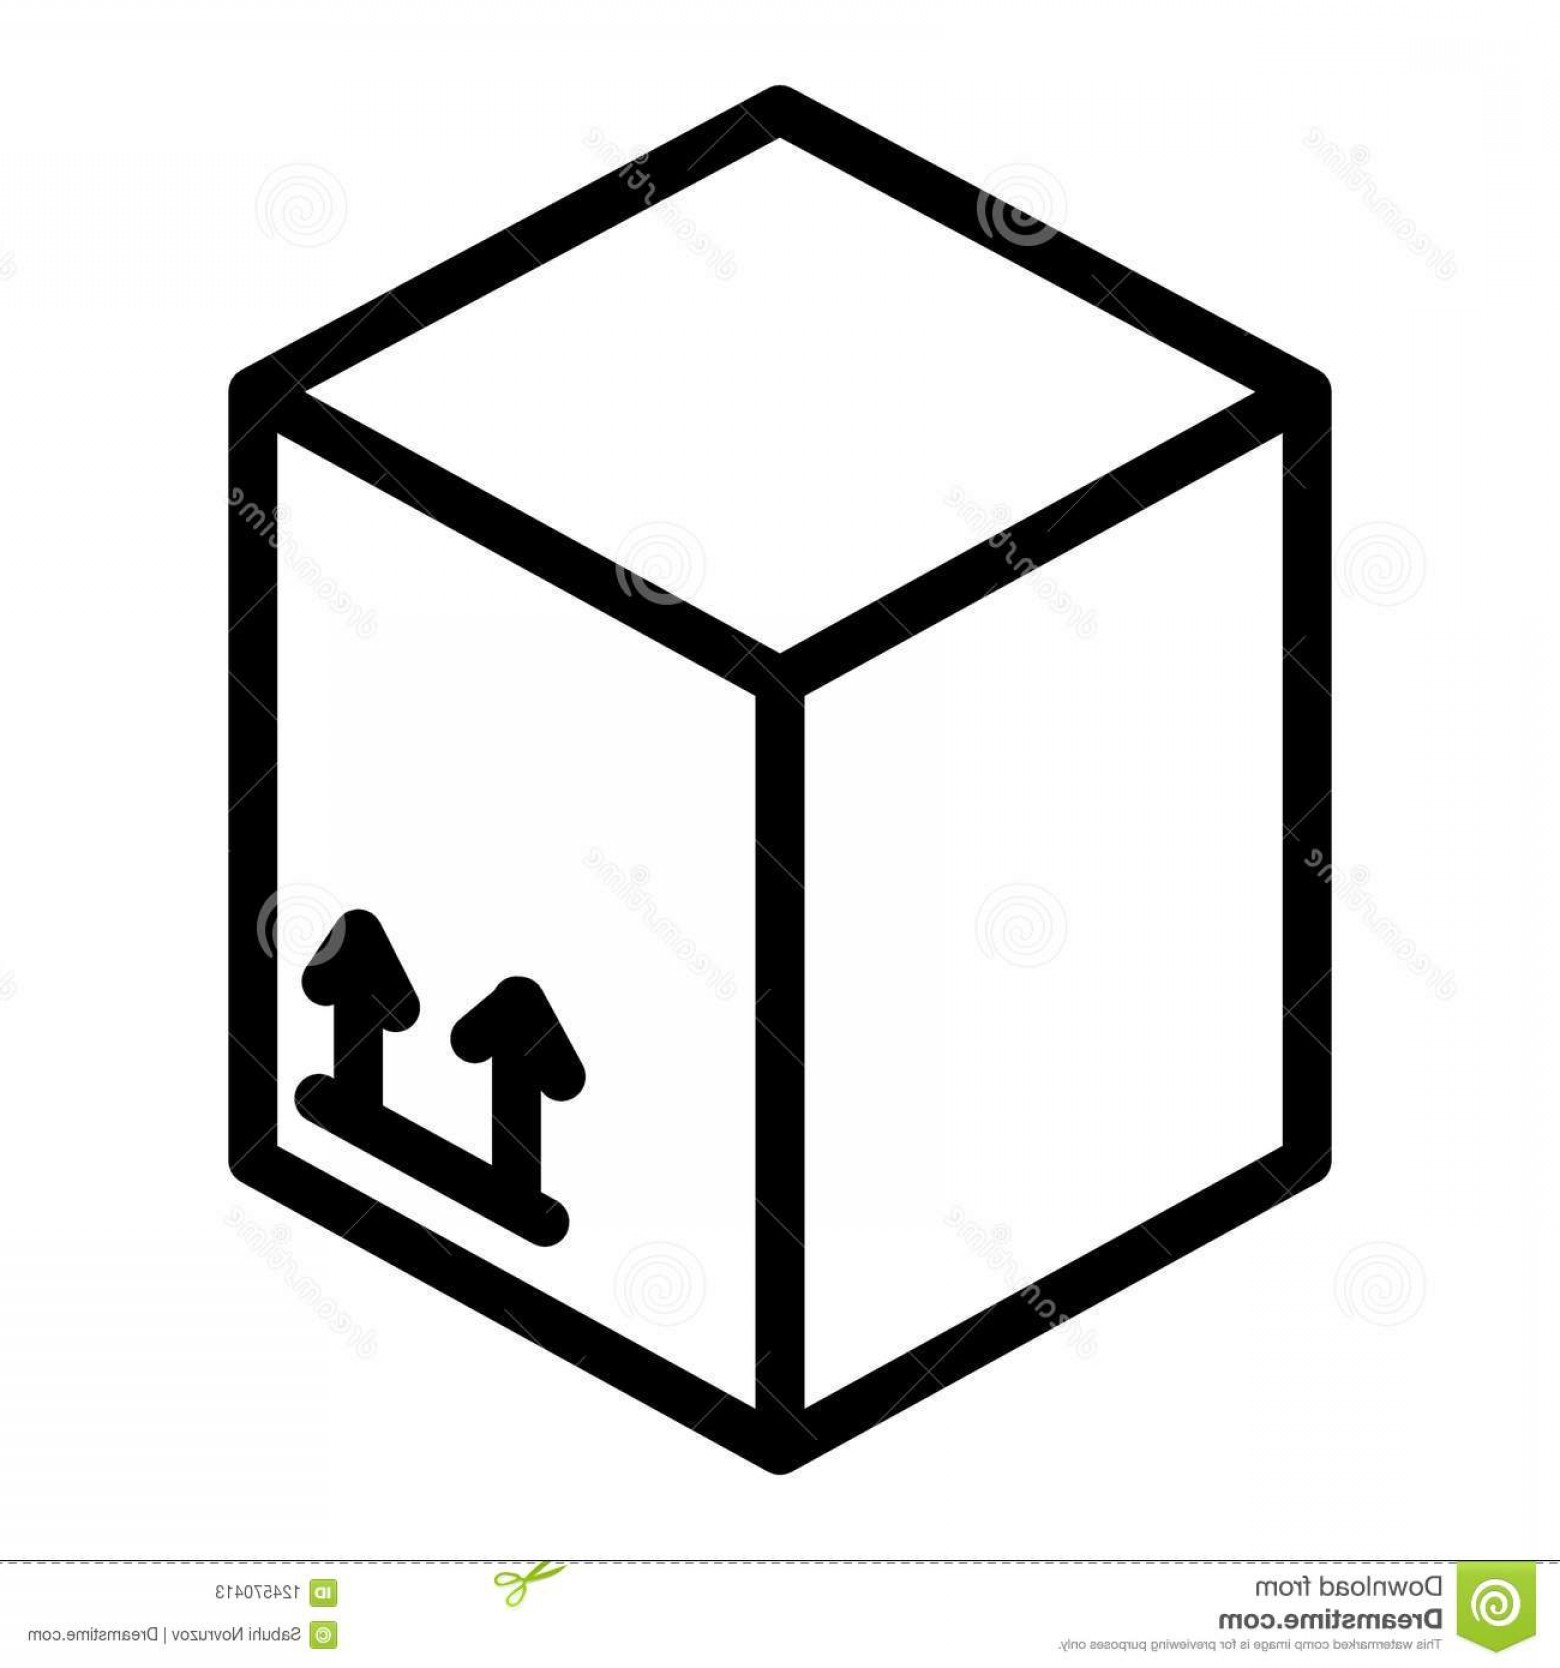 Box Outline Vector: Carton Box Line Icon Package Box Vector Illustration Isolated White Cardboard Box Outline Style Design Designed Carton Box Line Image